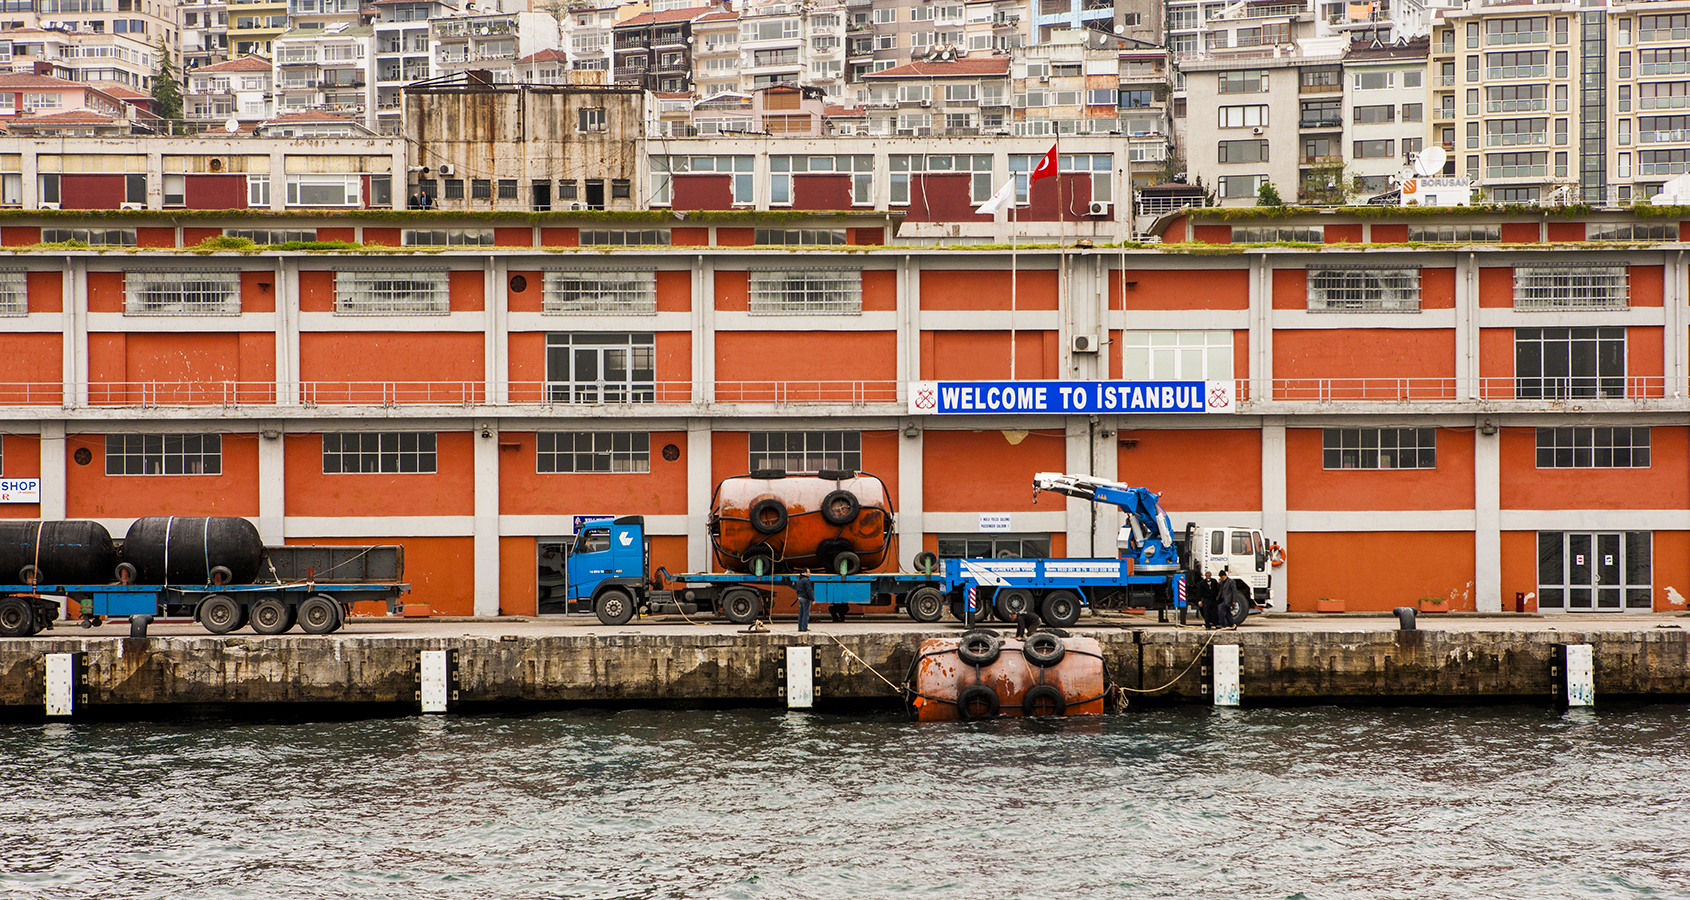 pier_istanbul